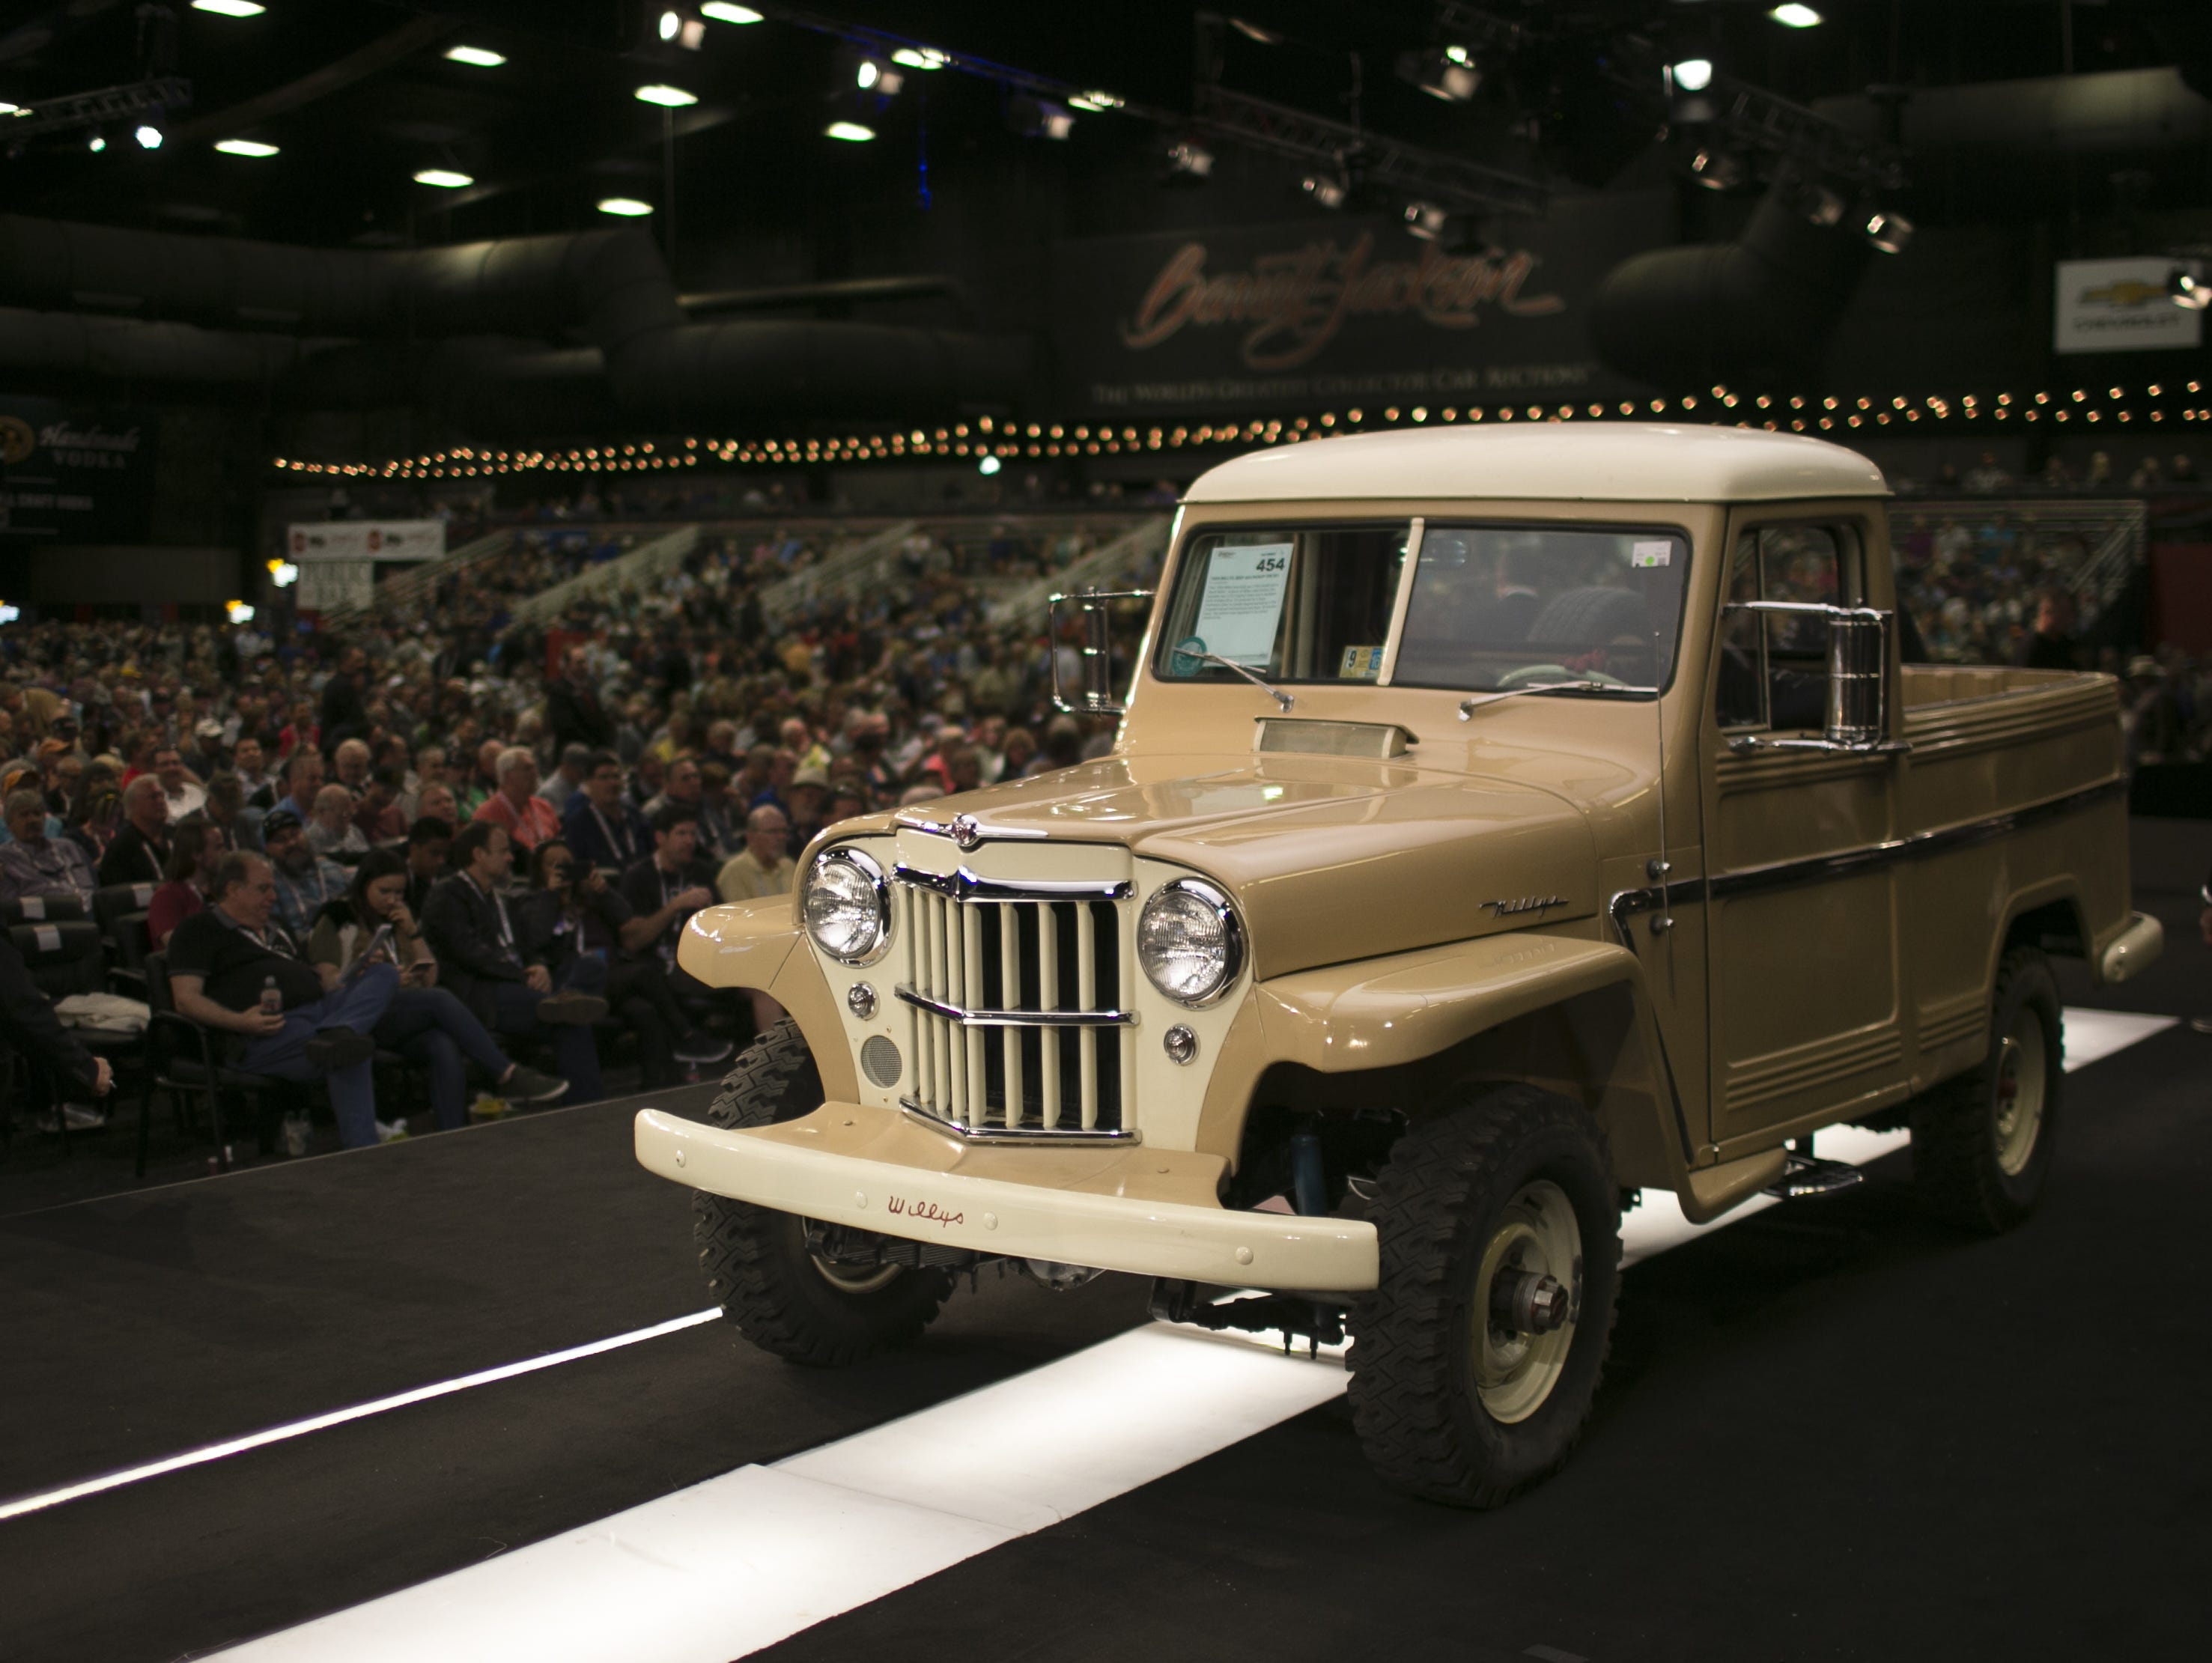 A 1954 Willy's Jeep is auctioned at the Barrett-Jackson Car Auction at WestWorld in Scottsdale, Arizona, on Jan. 16, 2019.